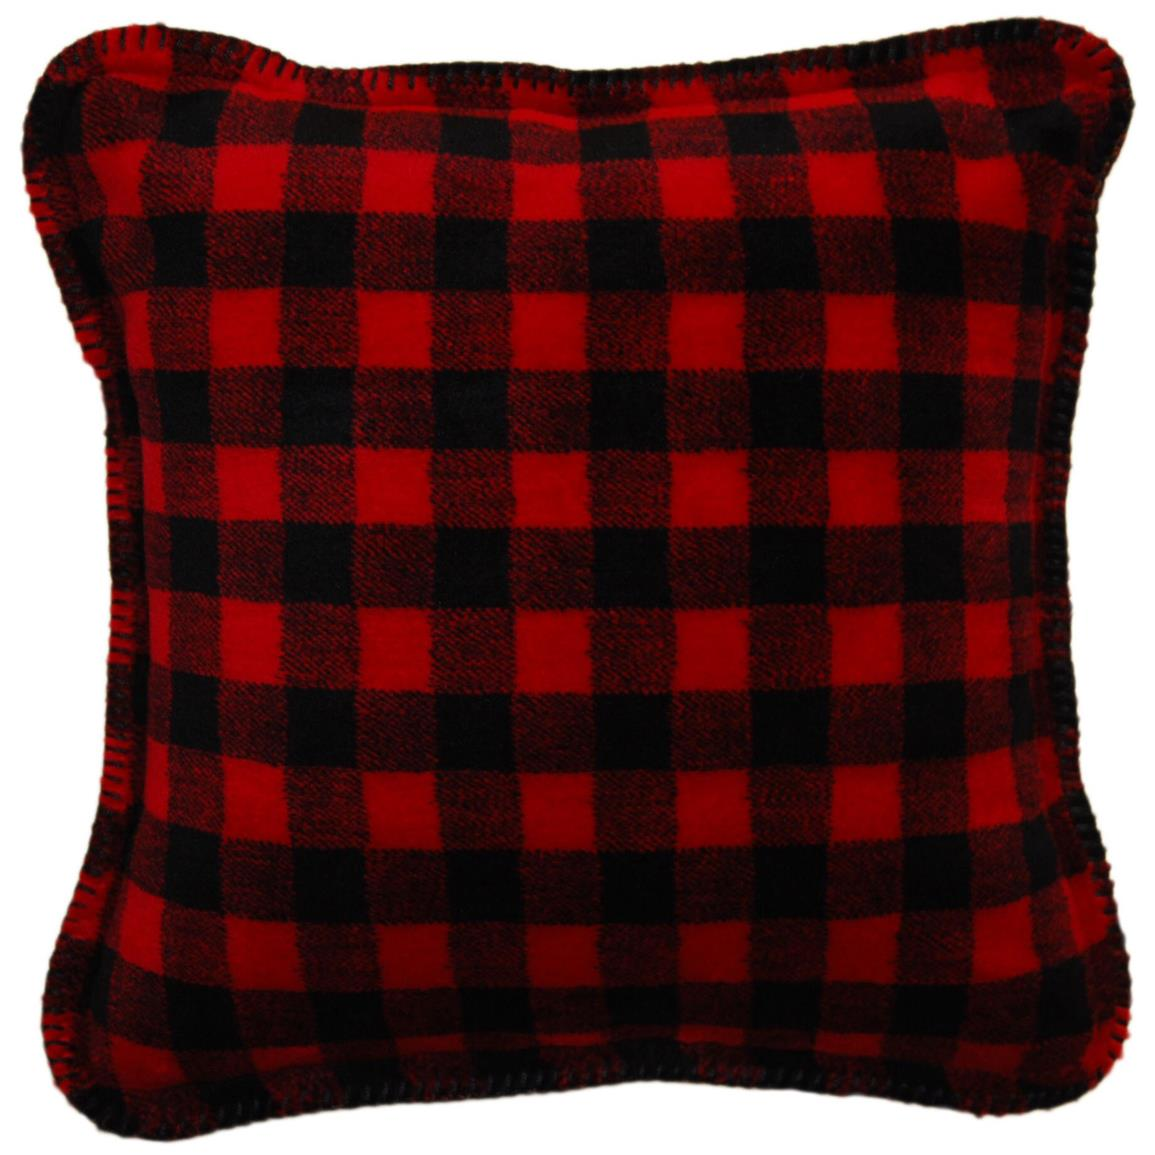 Image of: black and red decorative pillows